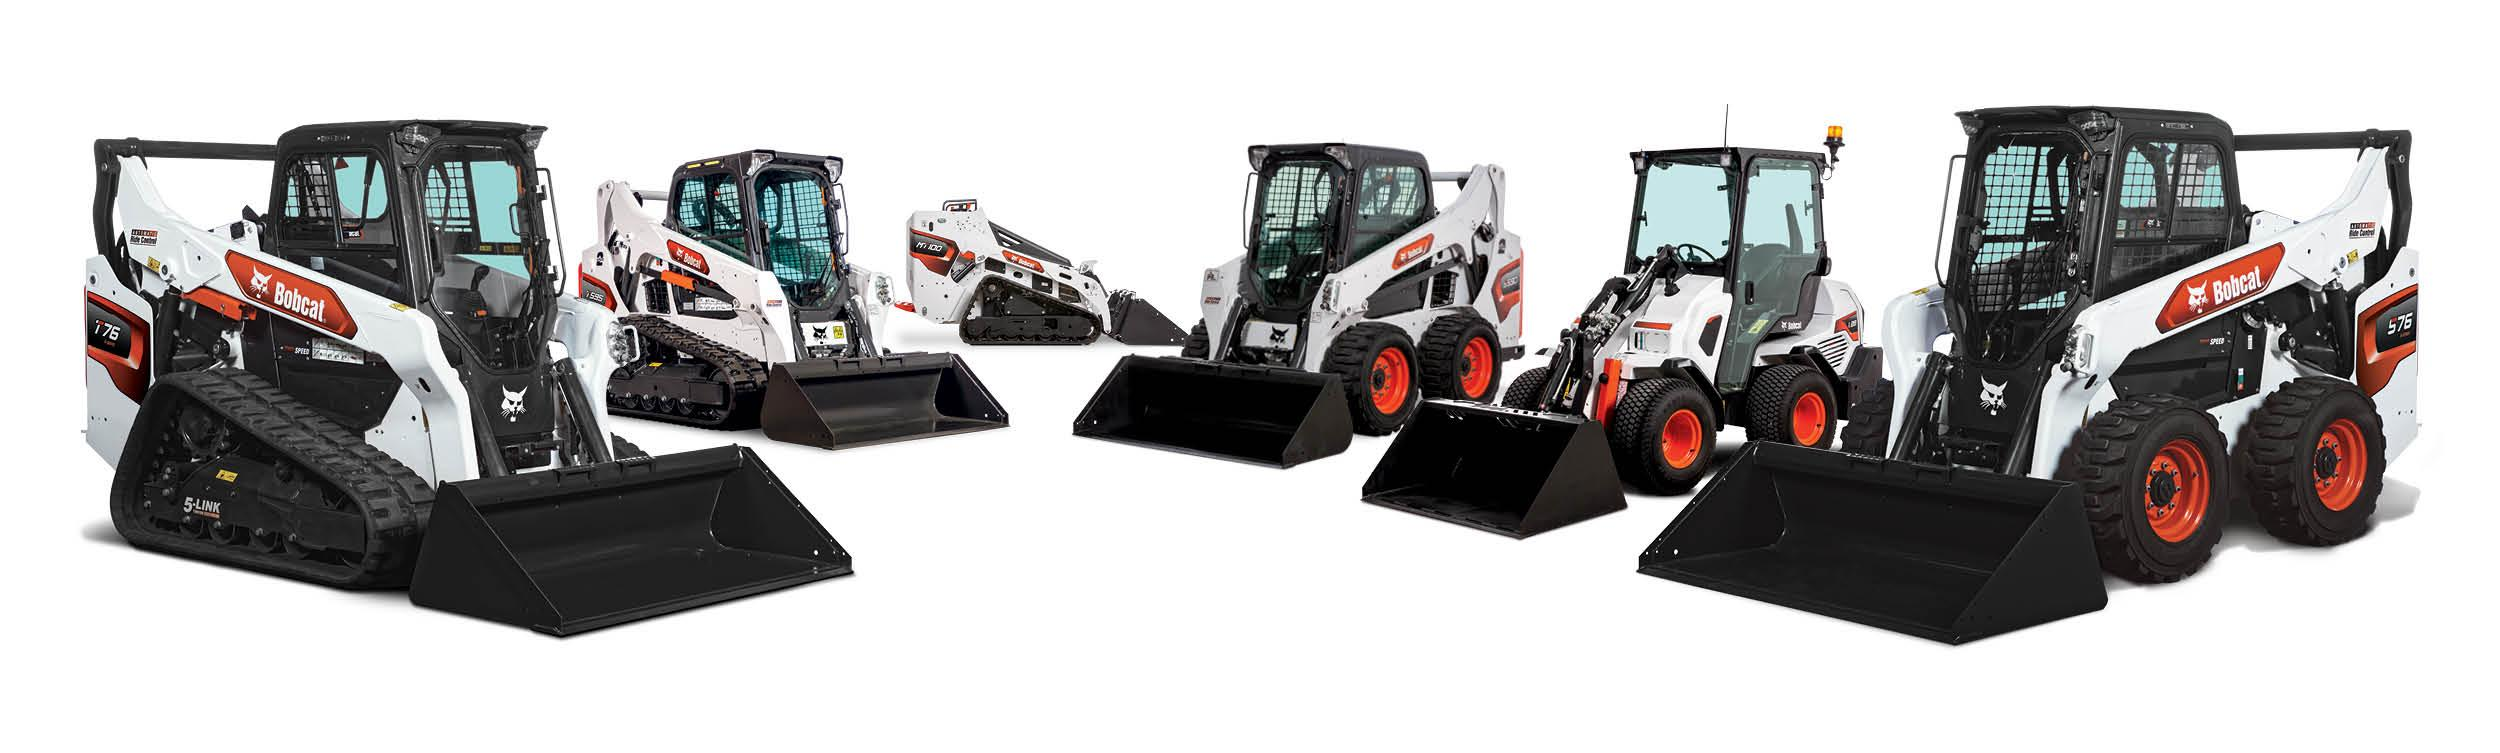 Studio Image Of The Bobcat Compact Track, Mini, Skid-Steer and Articulated Loaders